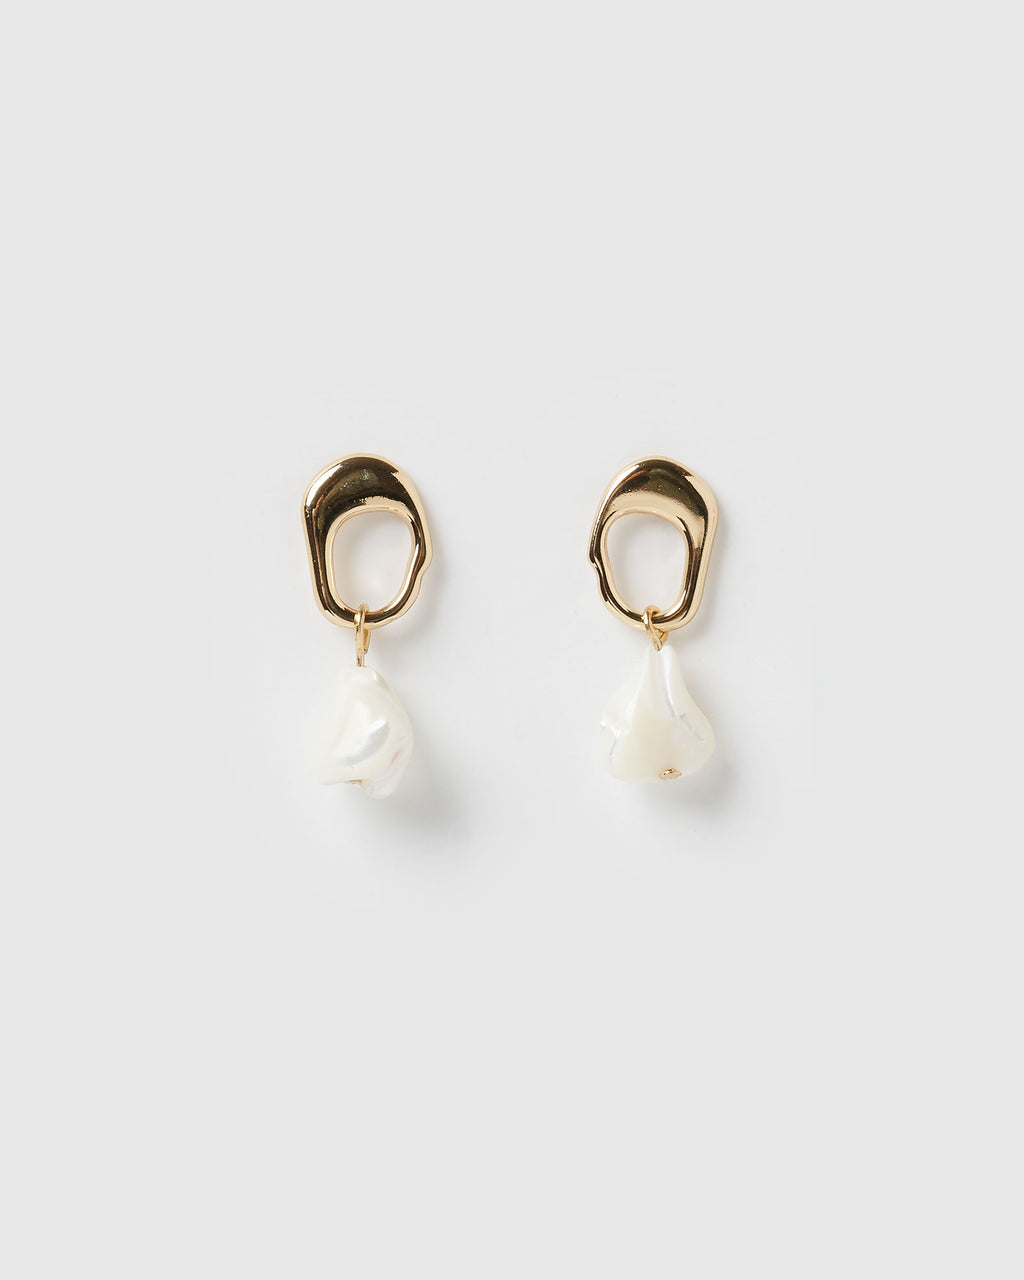 Izoa Lotus Earrings Gold Freshwater Pearl